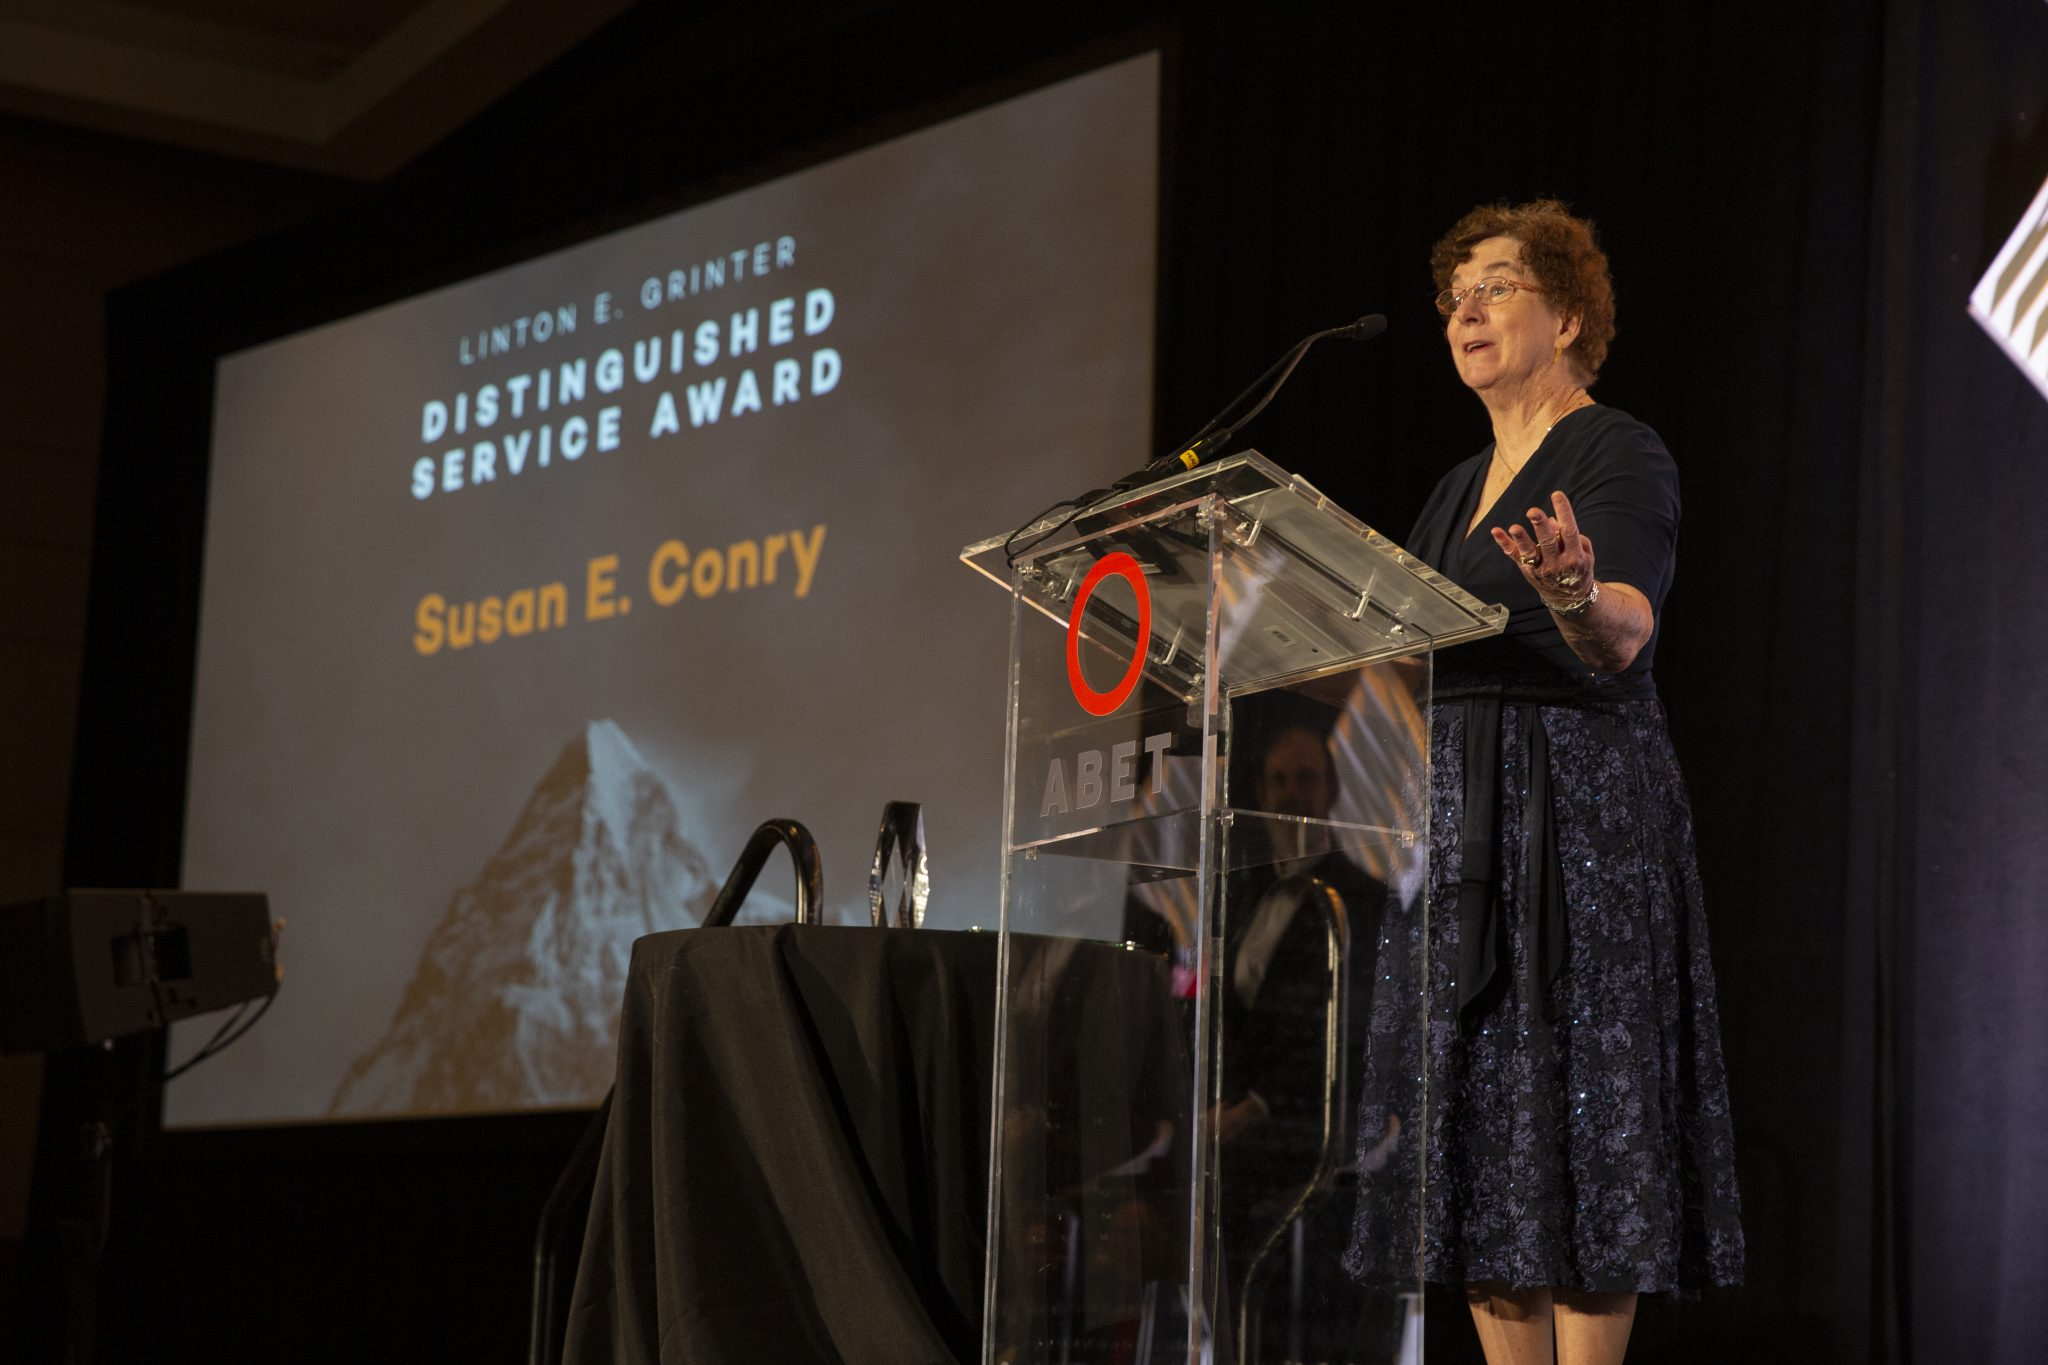 Susan E. Conry, recipient of the 2019 Linton E. Grinter Distinguished Award.